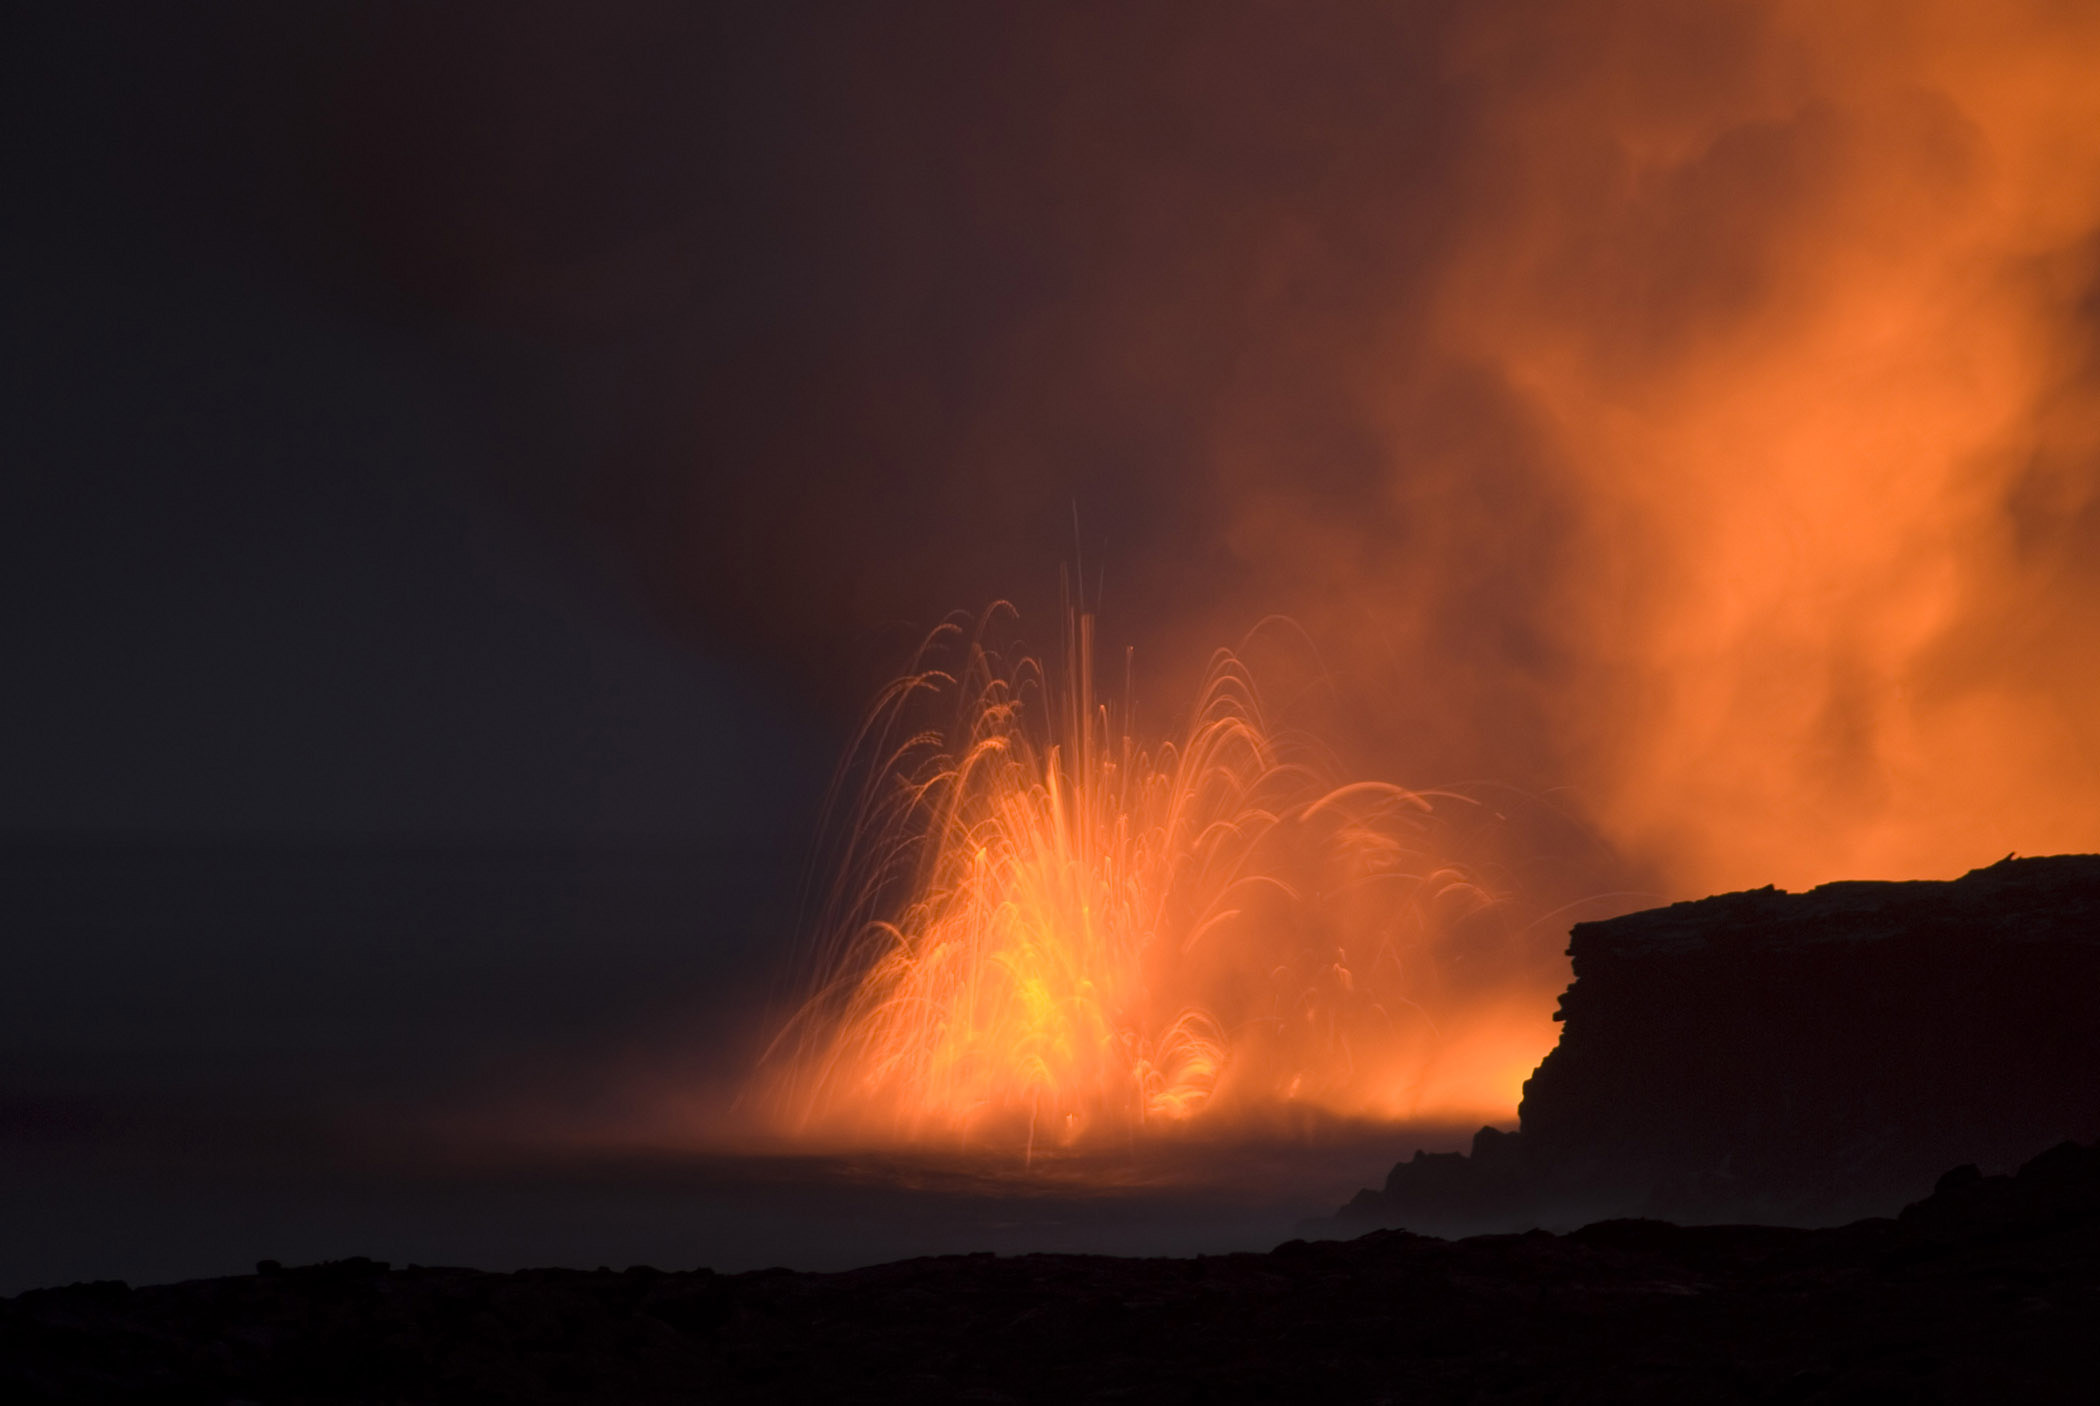 Red Hot Volcanic Lava Captured at Night Time